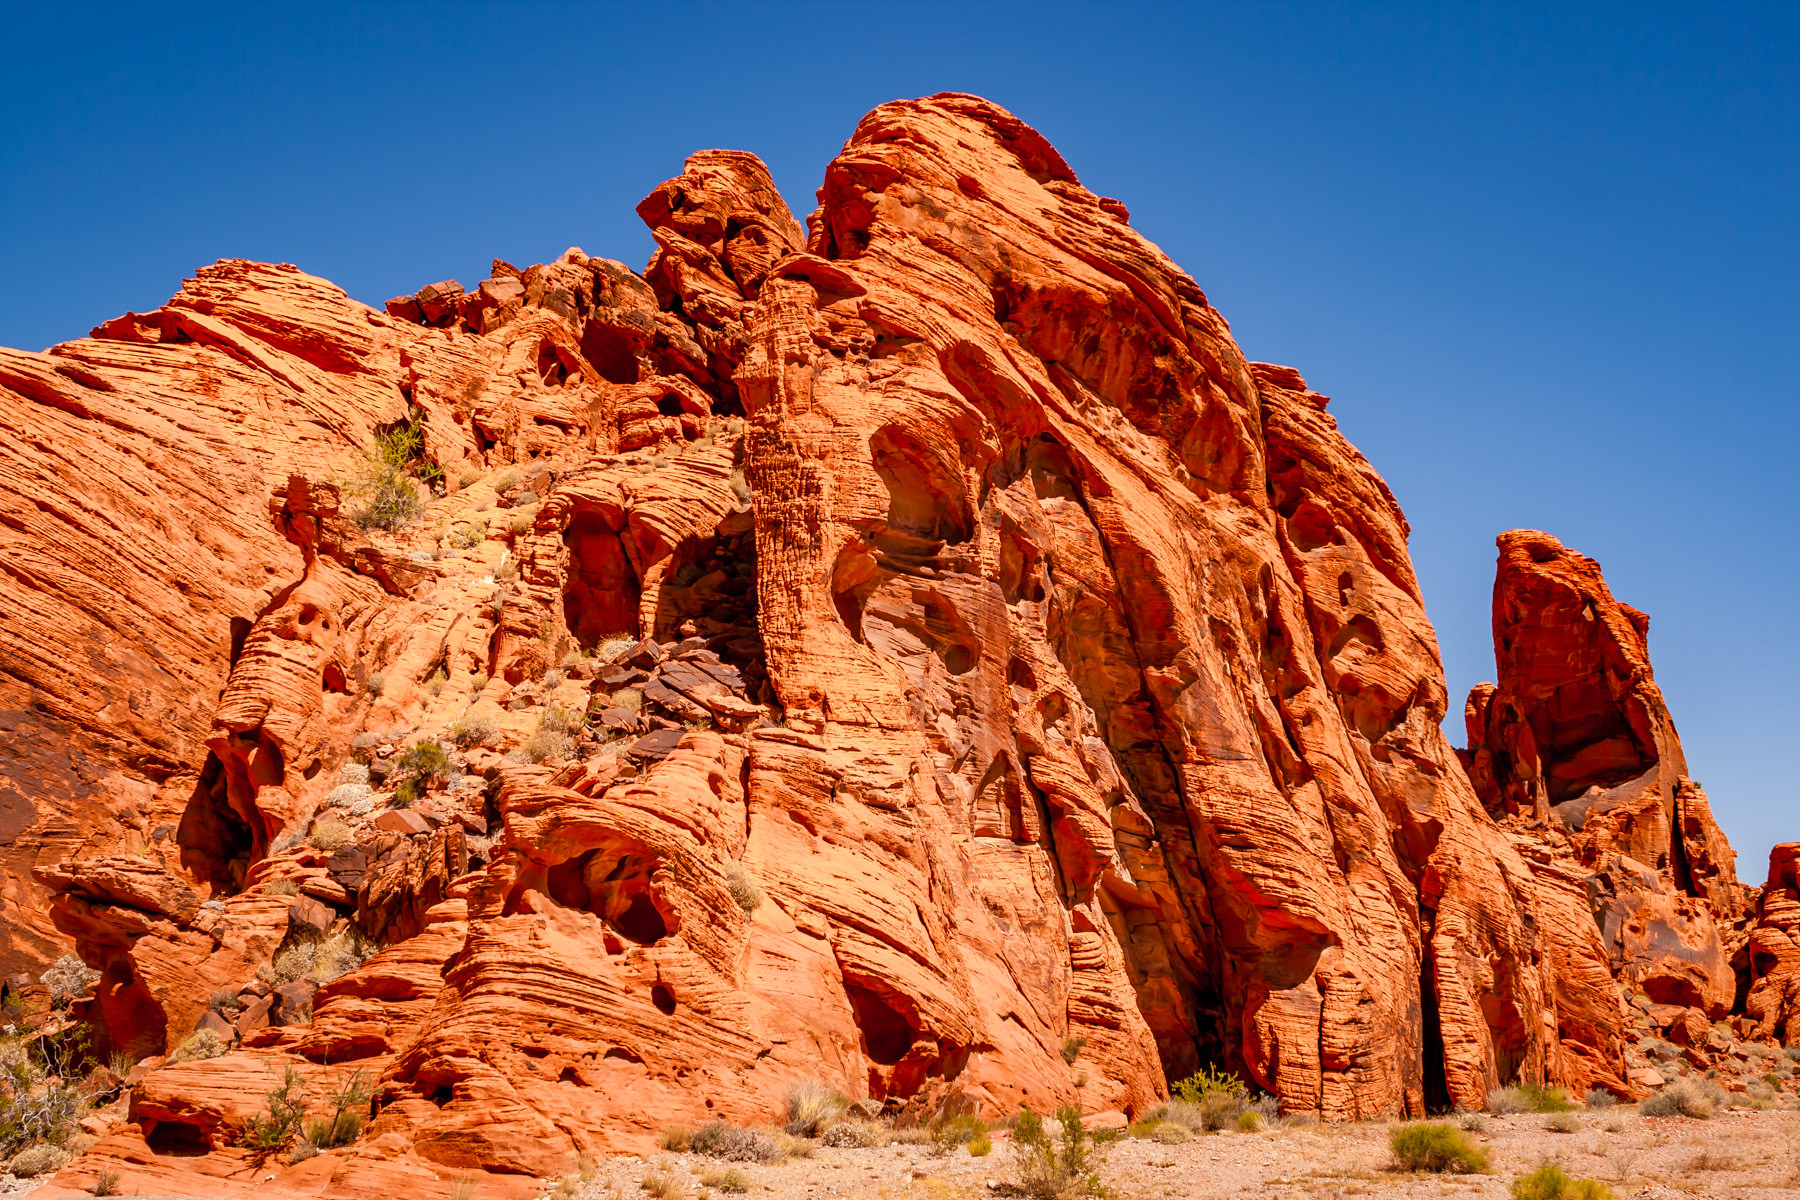 A desert landscape from Valley of Fire, Nevada.